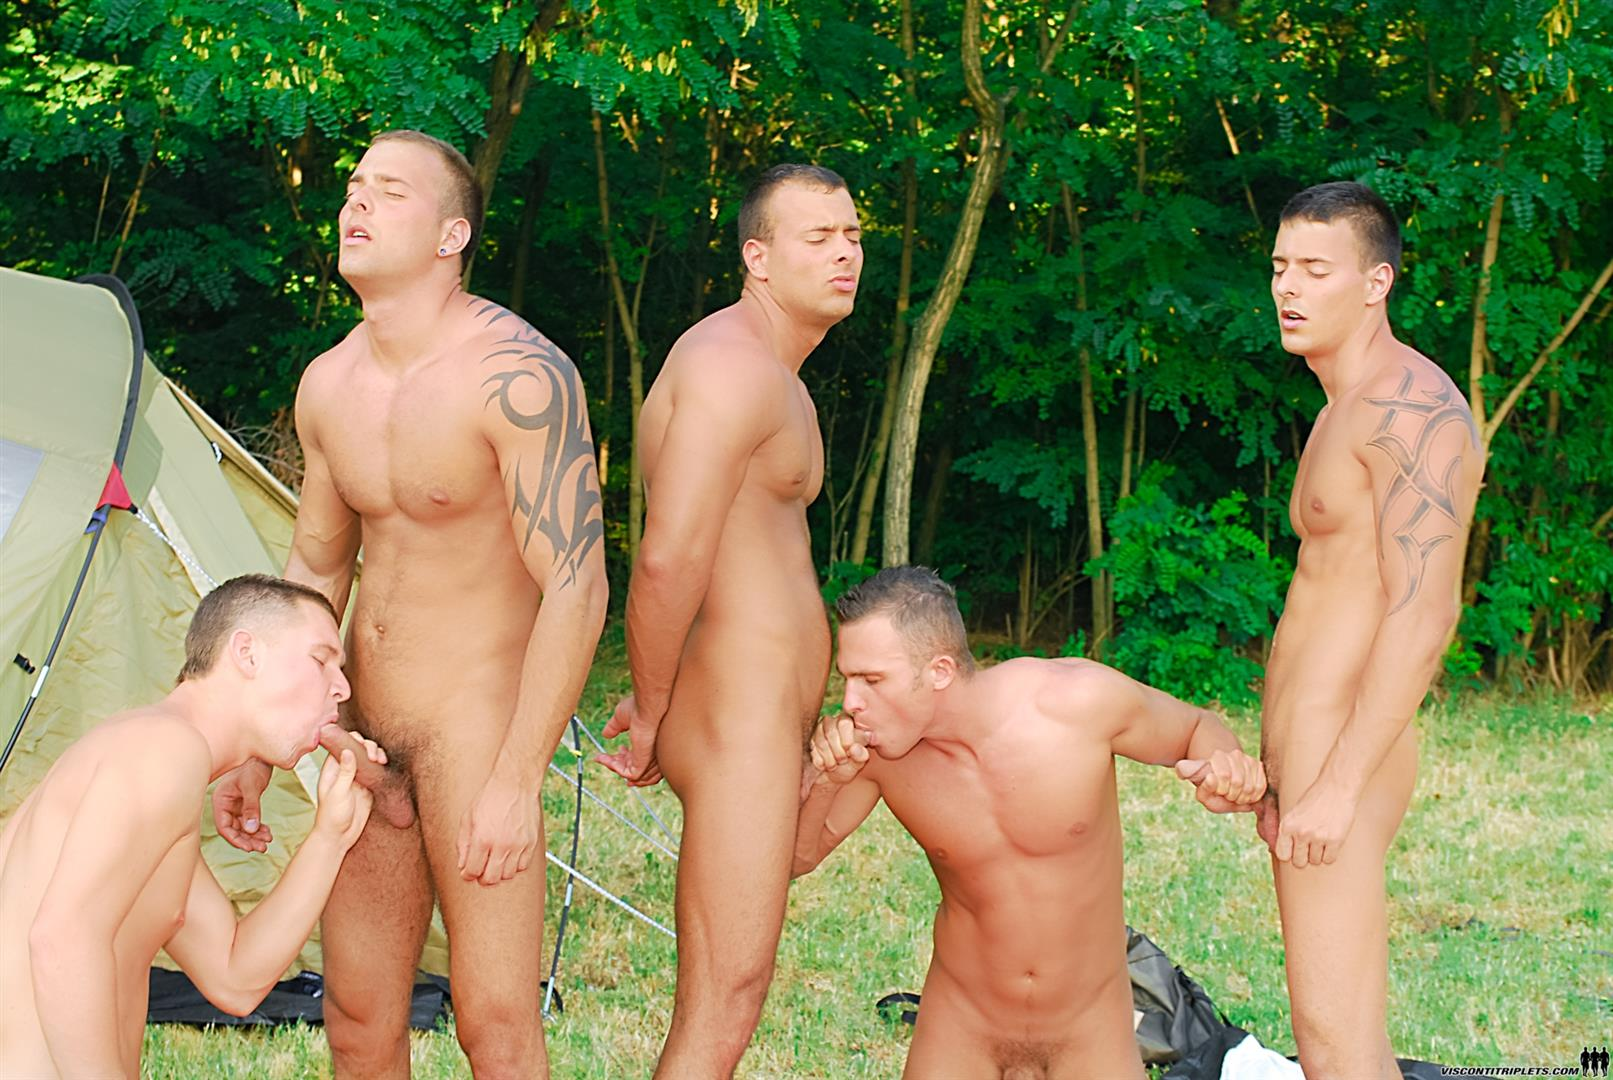 Visconti Triplets Jason Visconti Jimmy Visconti Joey Visconti Giuseppe Pardi Fucking During A Camping Trip Amateur Gay Porn 09 Visconti Triplets Tag Team Some Muscle Ass While Camping